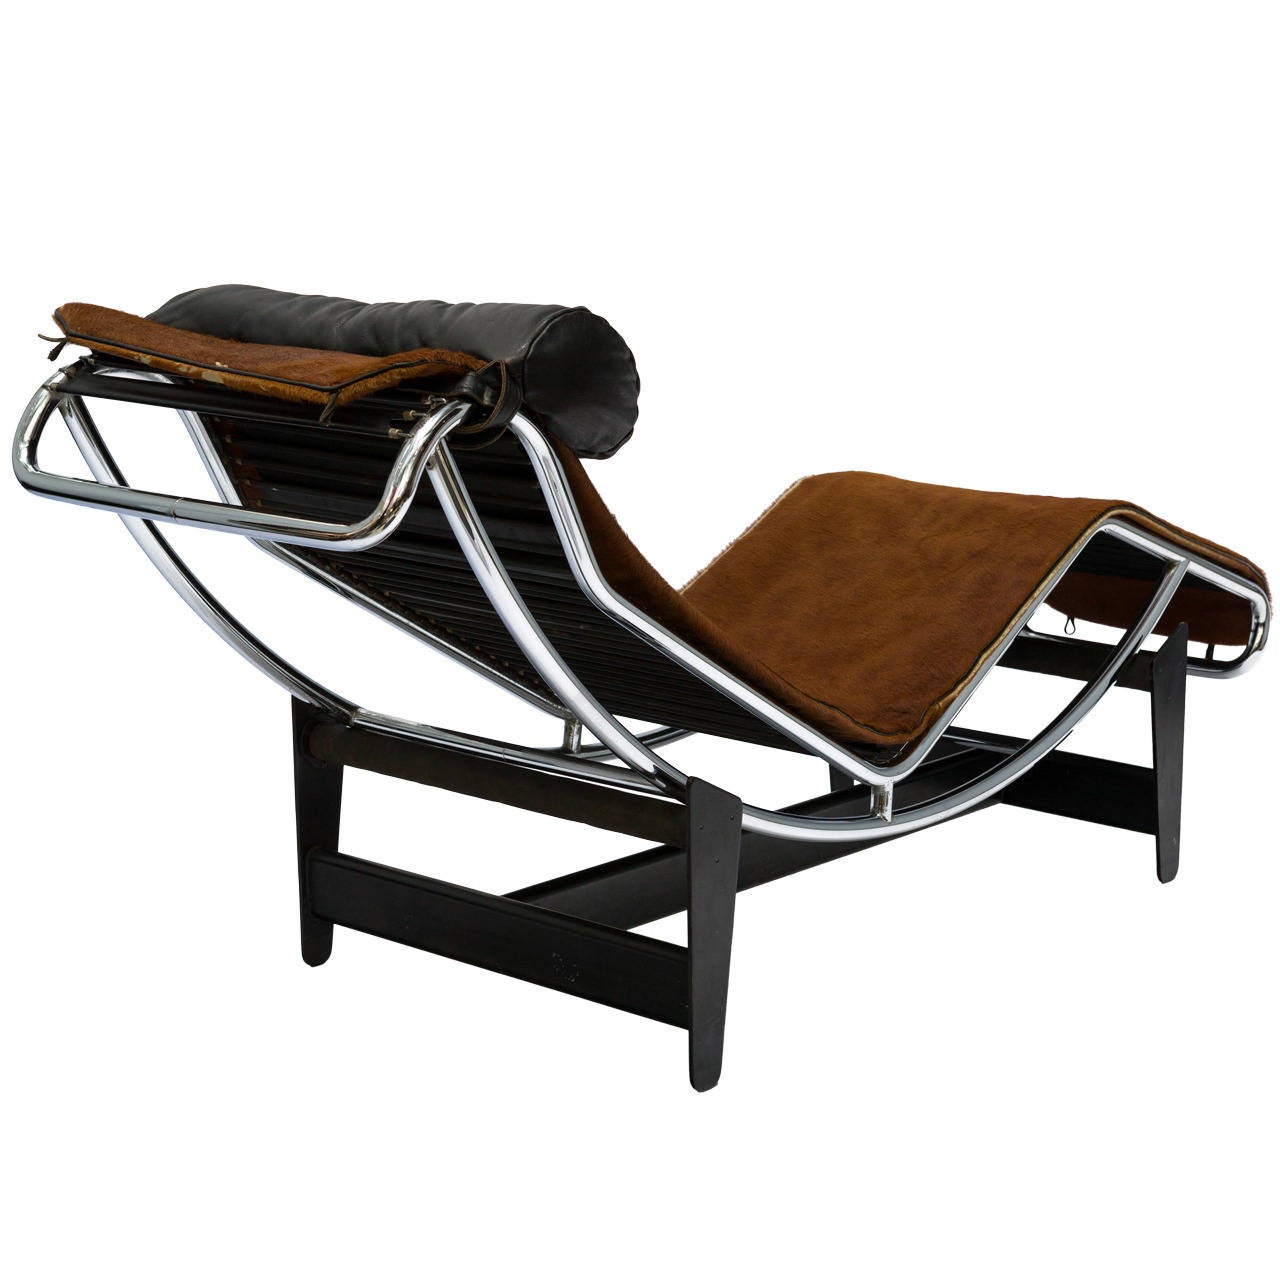 Le corbusier lc4 chaise lounge at 1stdibs for Chaise longue lockheed lounge